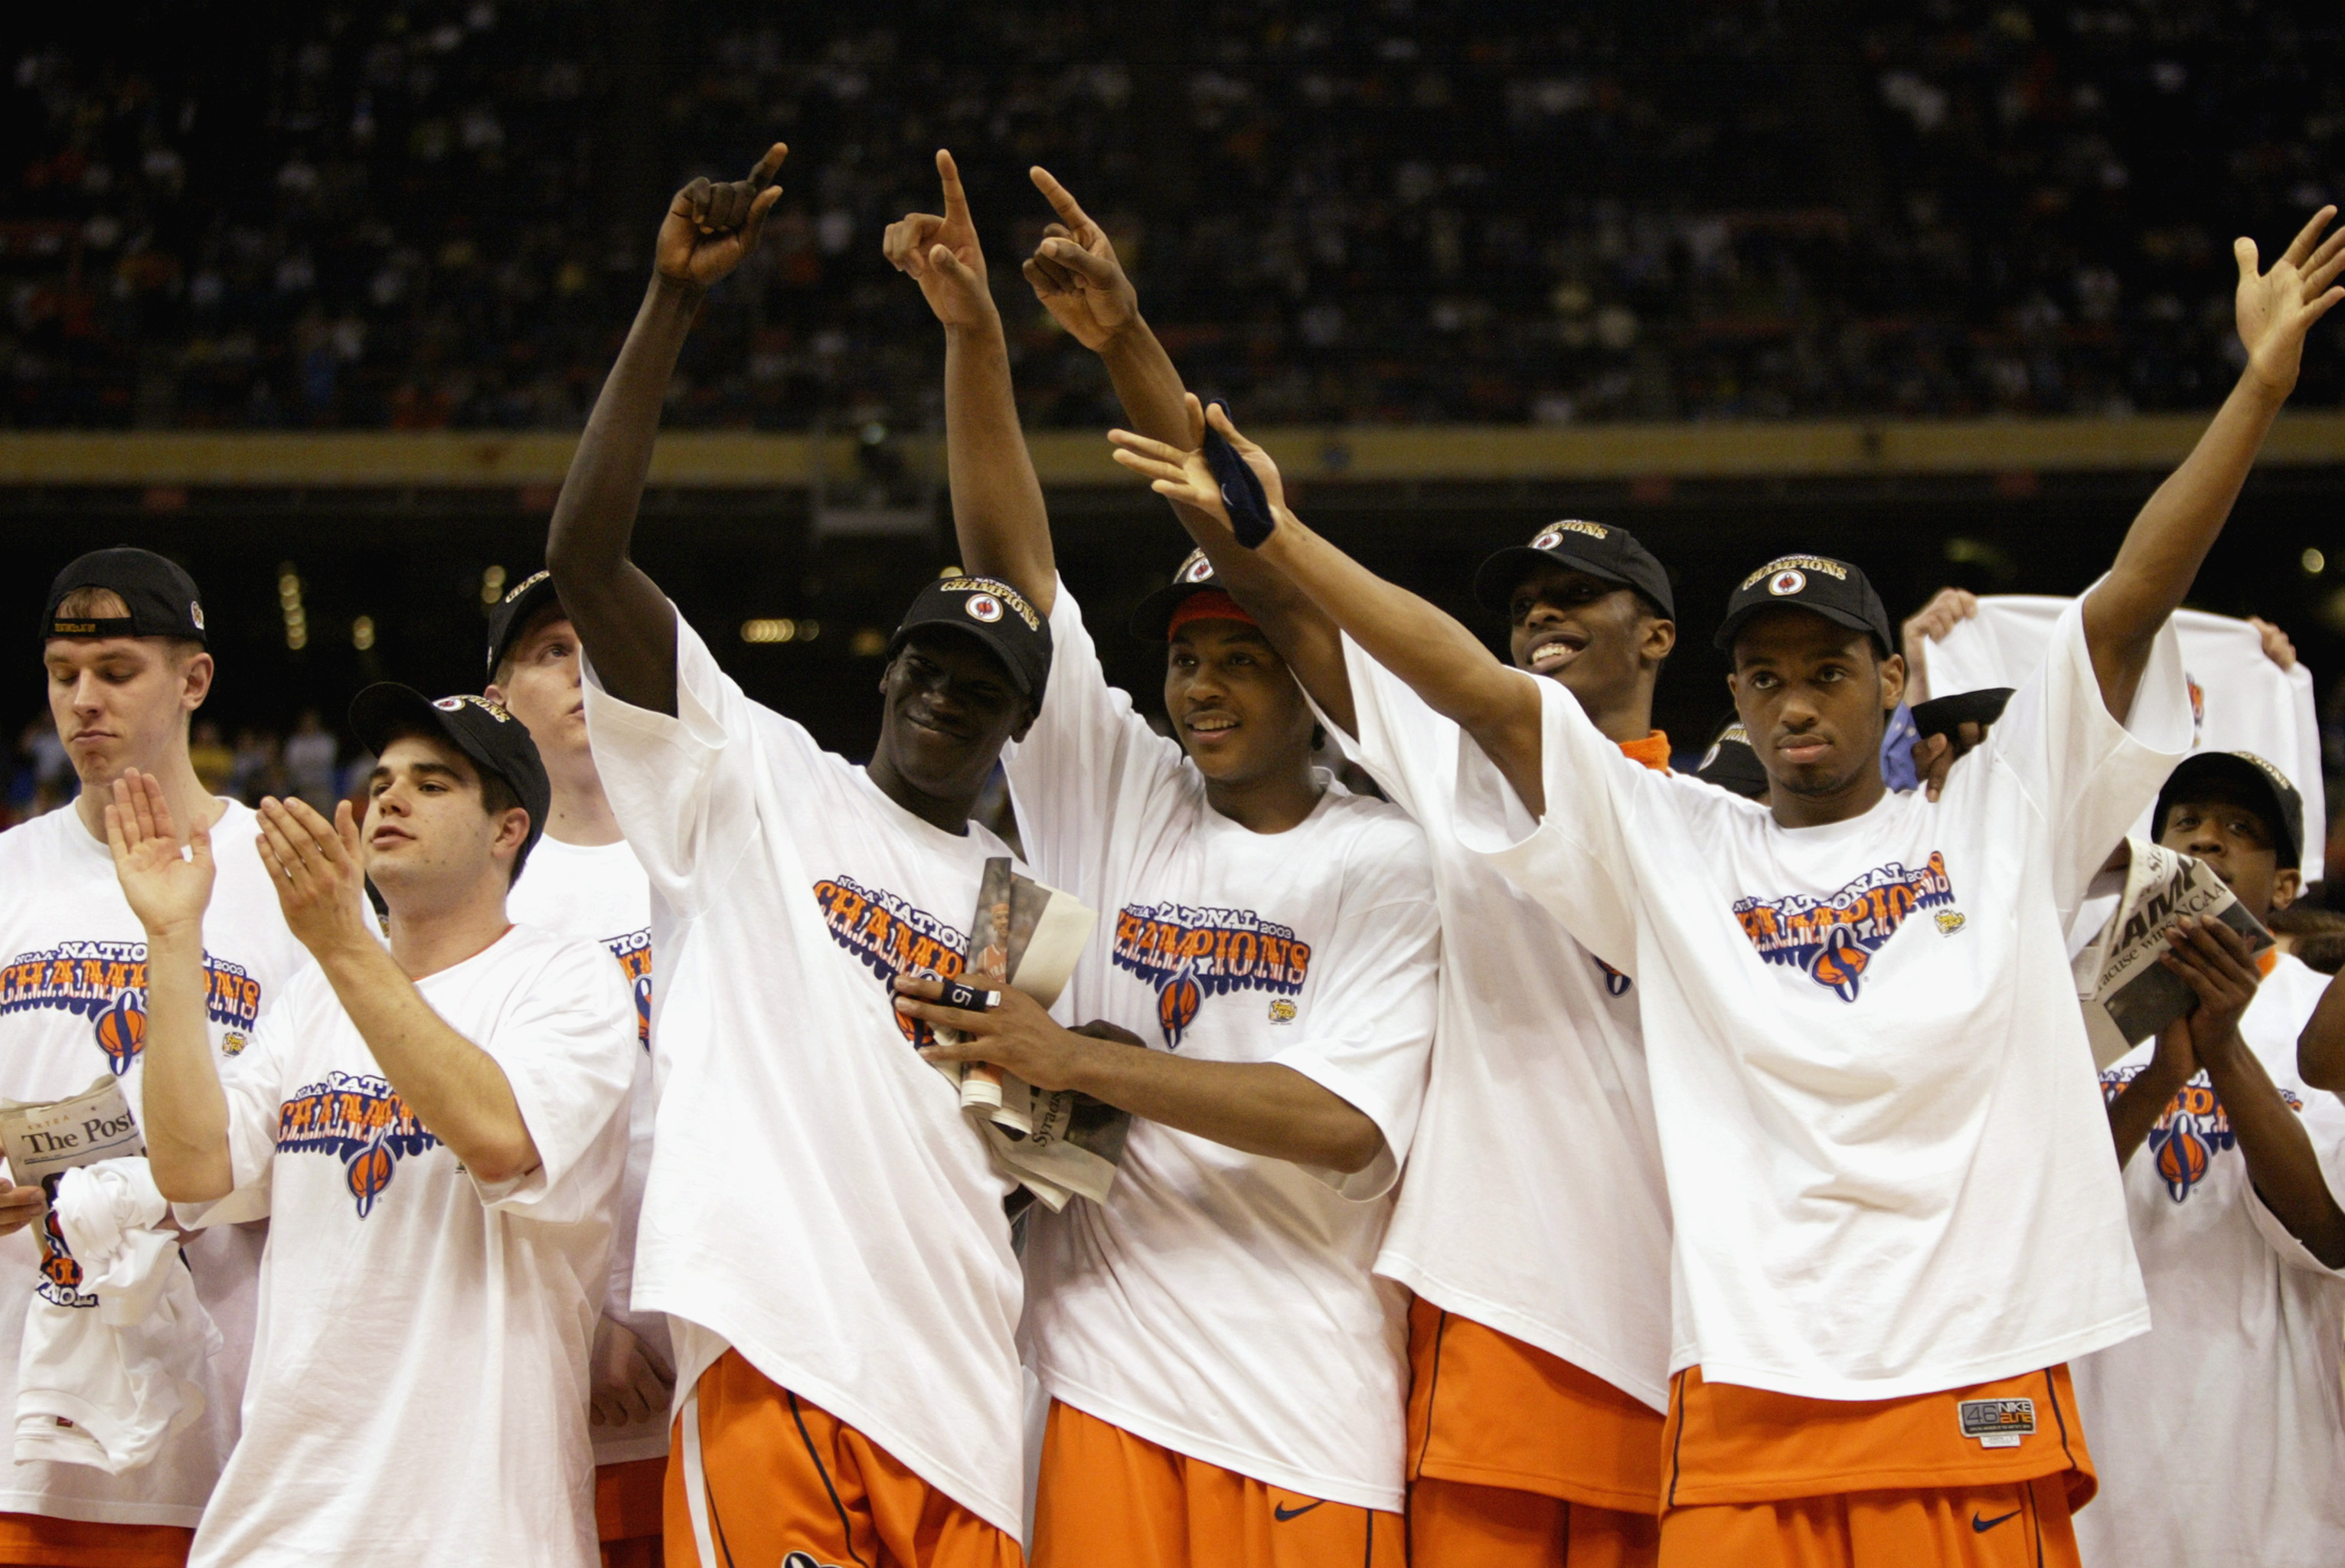 NEW ORLEANS - APRIL 7:  The Syracuse team (including Most Outstanding Player Carmelo Anthony #15, center) celebrates while wearing their championship tee shirts and caps after the victory against Kansas in the championship game of the NCAA Men's Final Fou